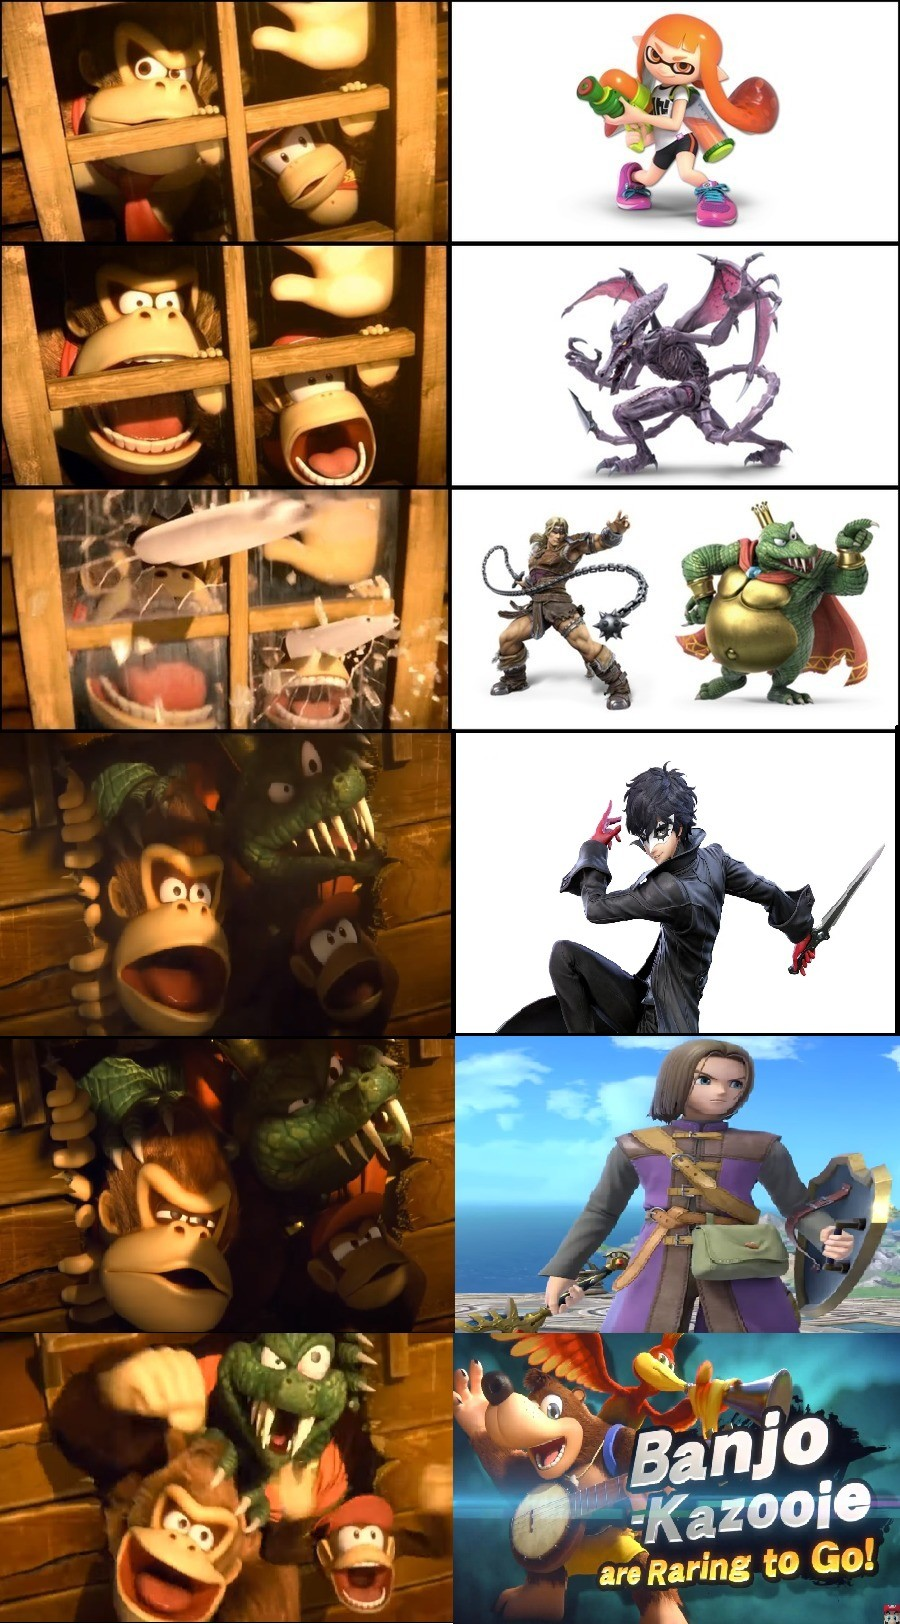 Everyones literal reaction. .. first off, i love how DK and Diddy are just letting King K Rool crash at their place, and second, i love how excited the three of them are when Banjo and Kazooi